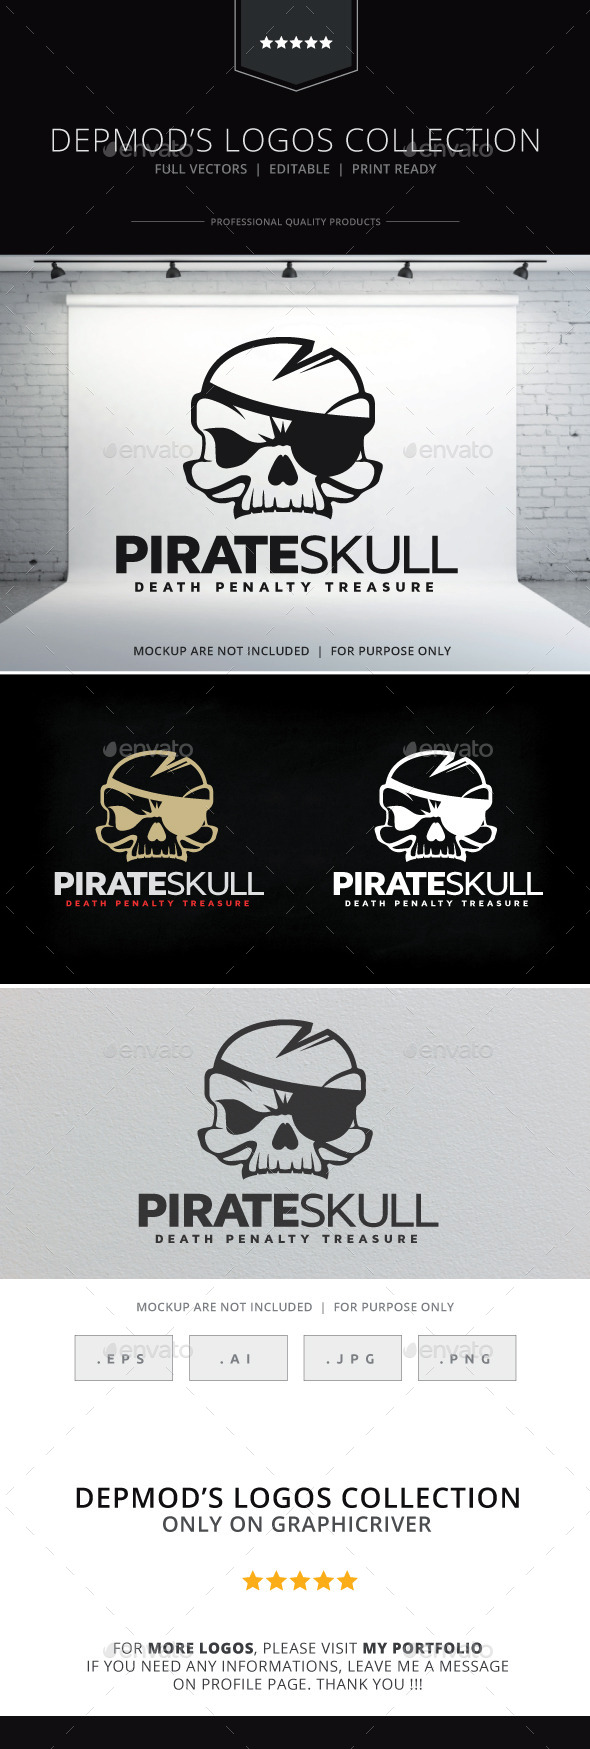 GraphicRiver Pirate Skull Logo 10007946